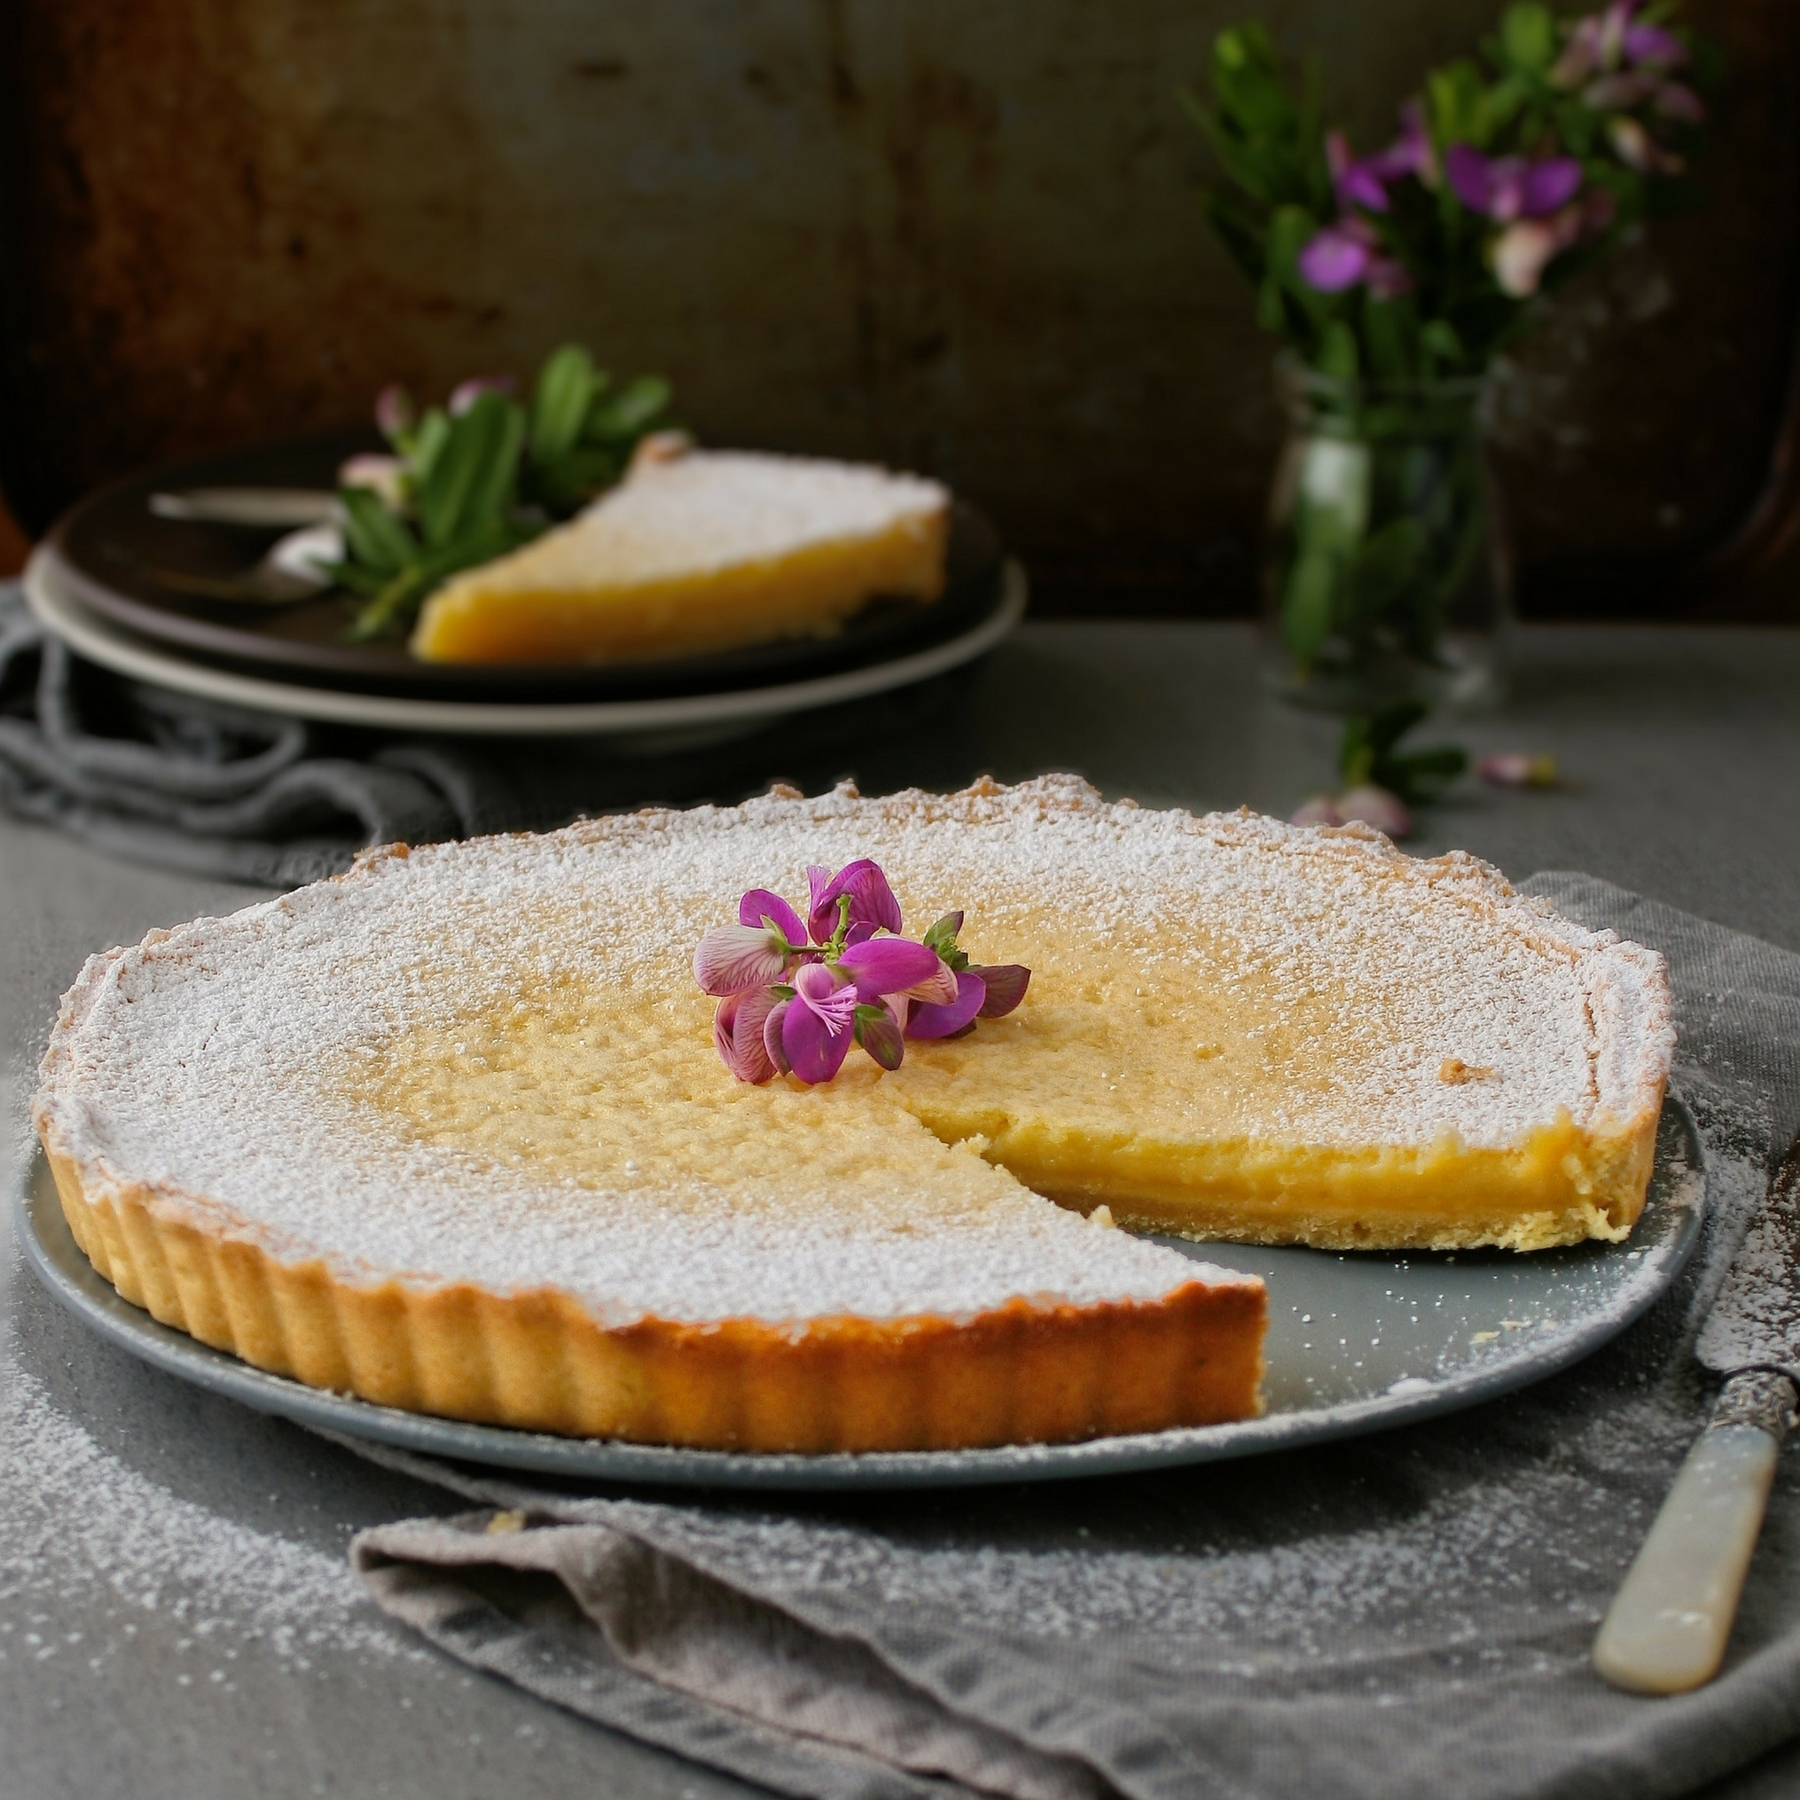 cupcakes-and-couscous wrote a new post, Lemon tart, on the site Cupcakes & Couscous